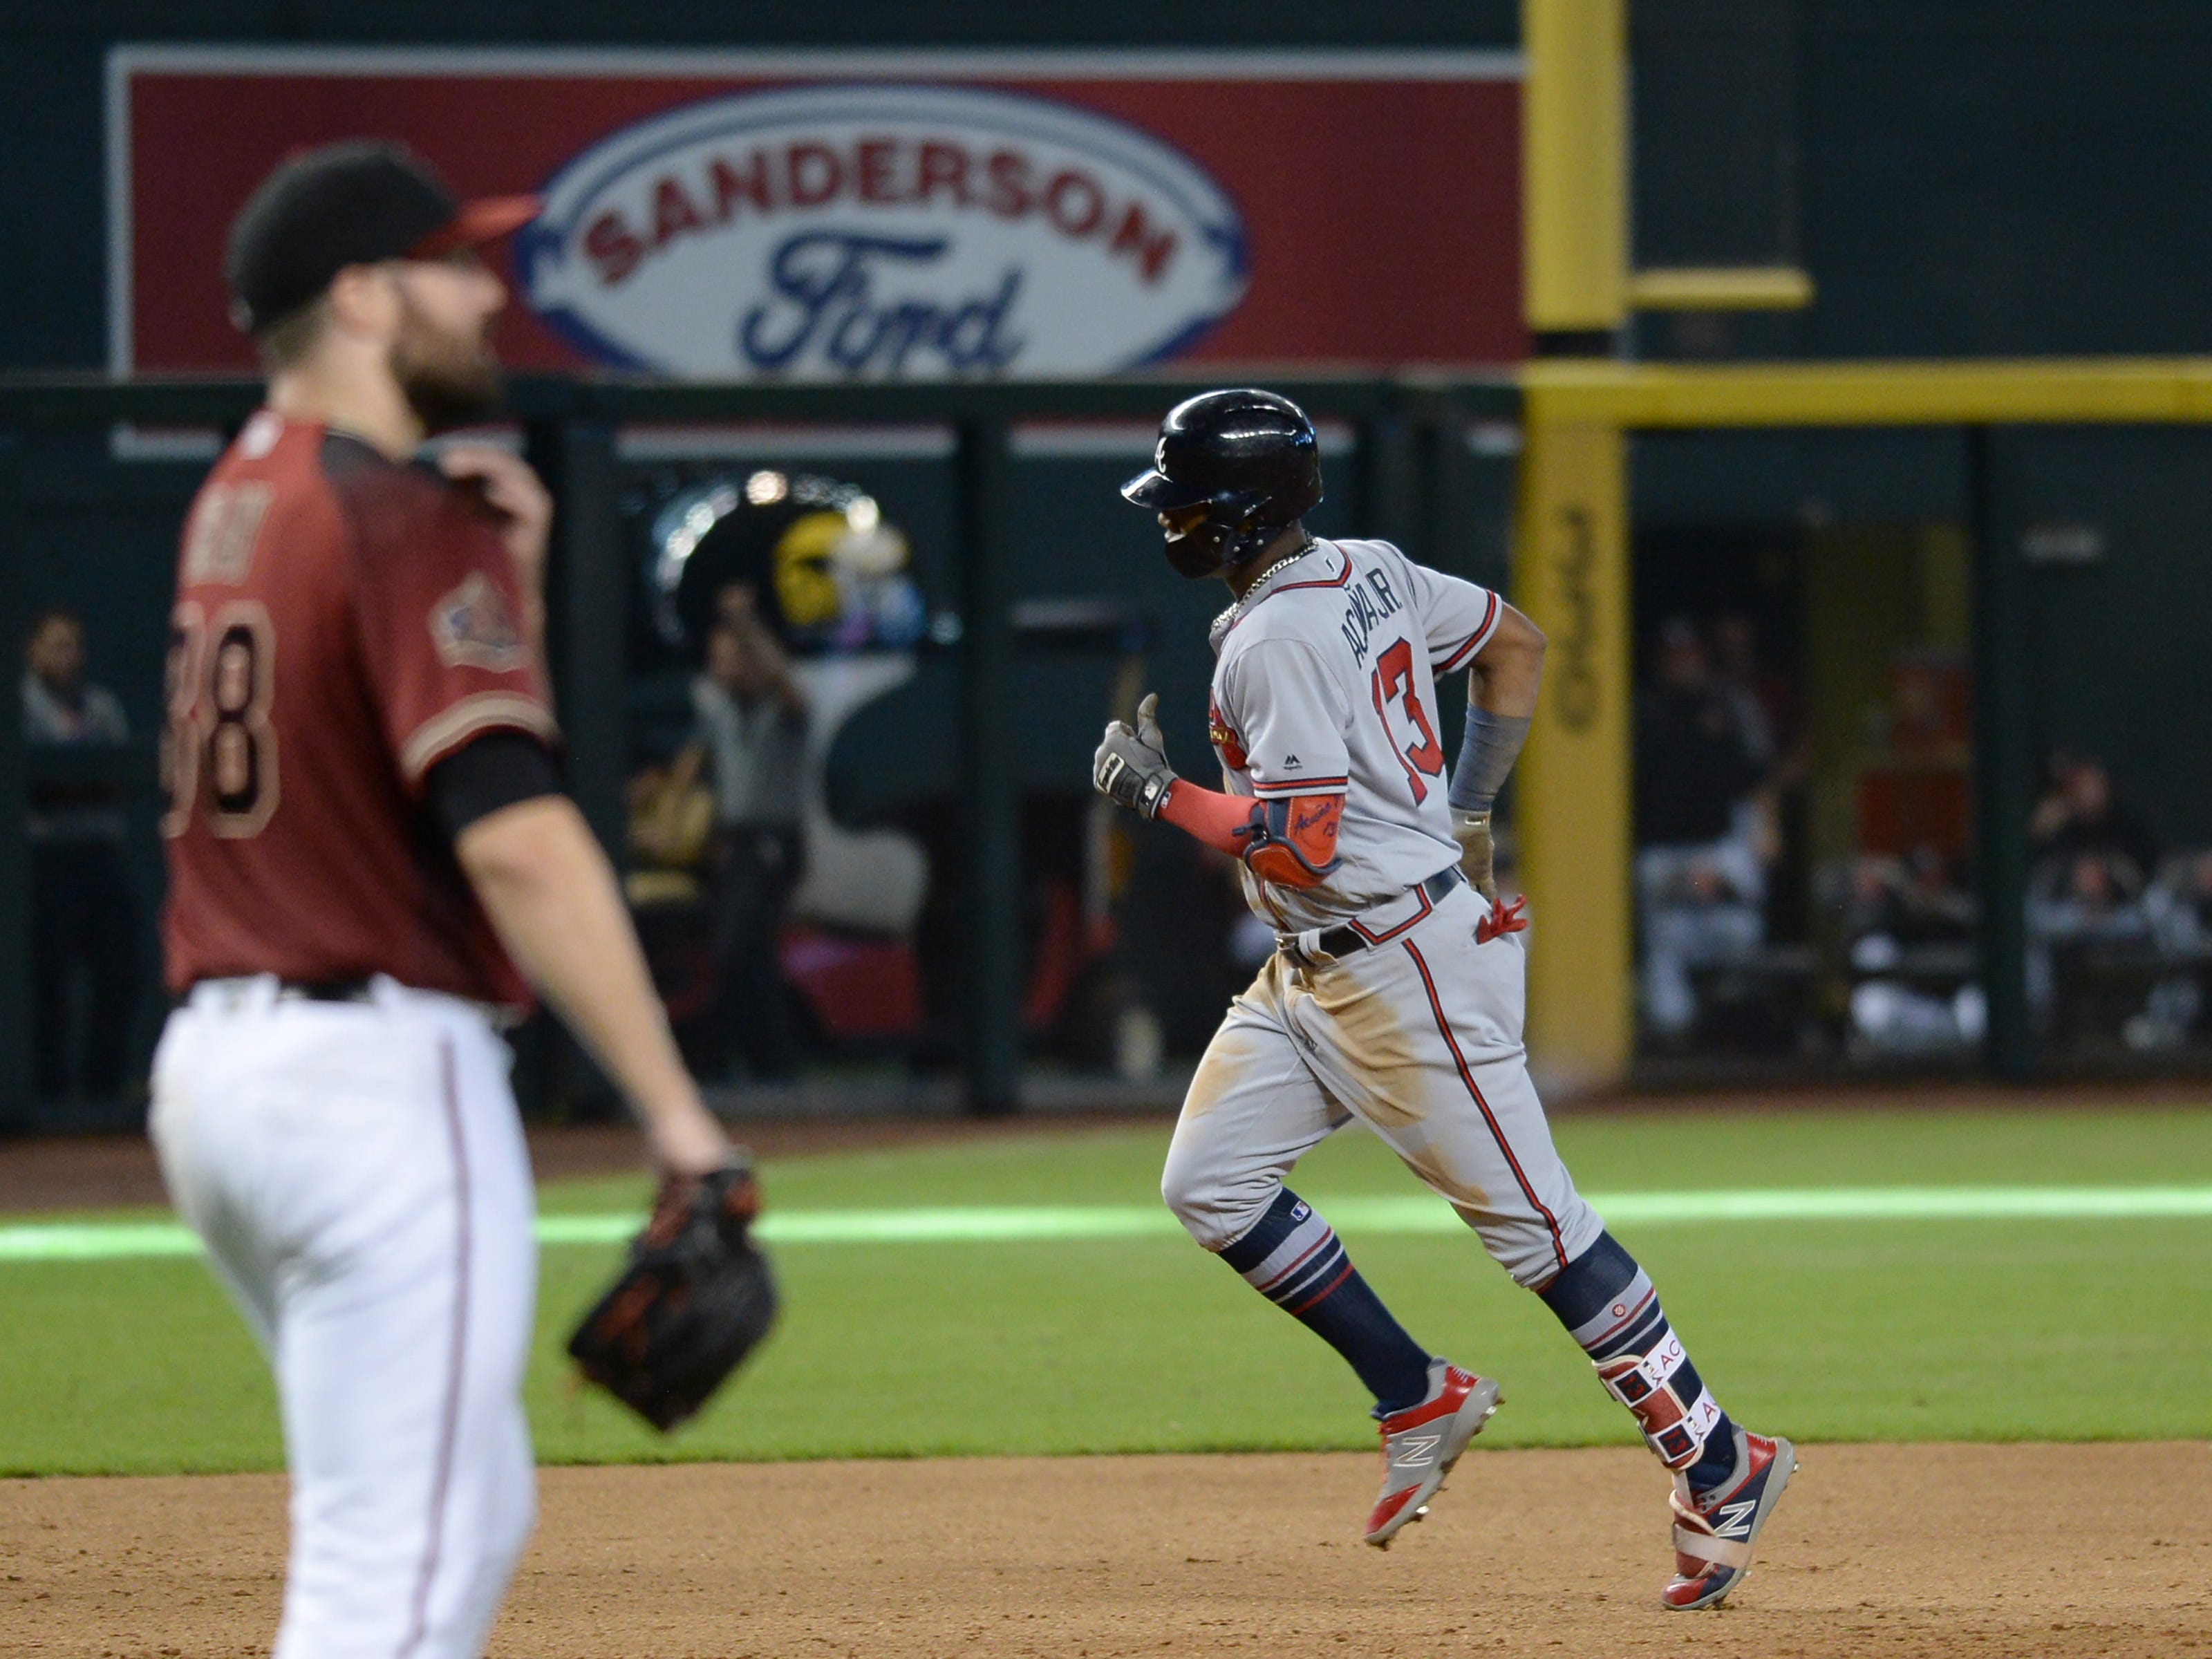 Sep 9, 2018; Phoenix, AZ, USA; Atlanta Braves left fielder Ronald Acuna Jr. (13) runs the bases after hitting a two-run home run against the Arizona Diamondbacks during the sixth inning at Chase Field.